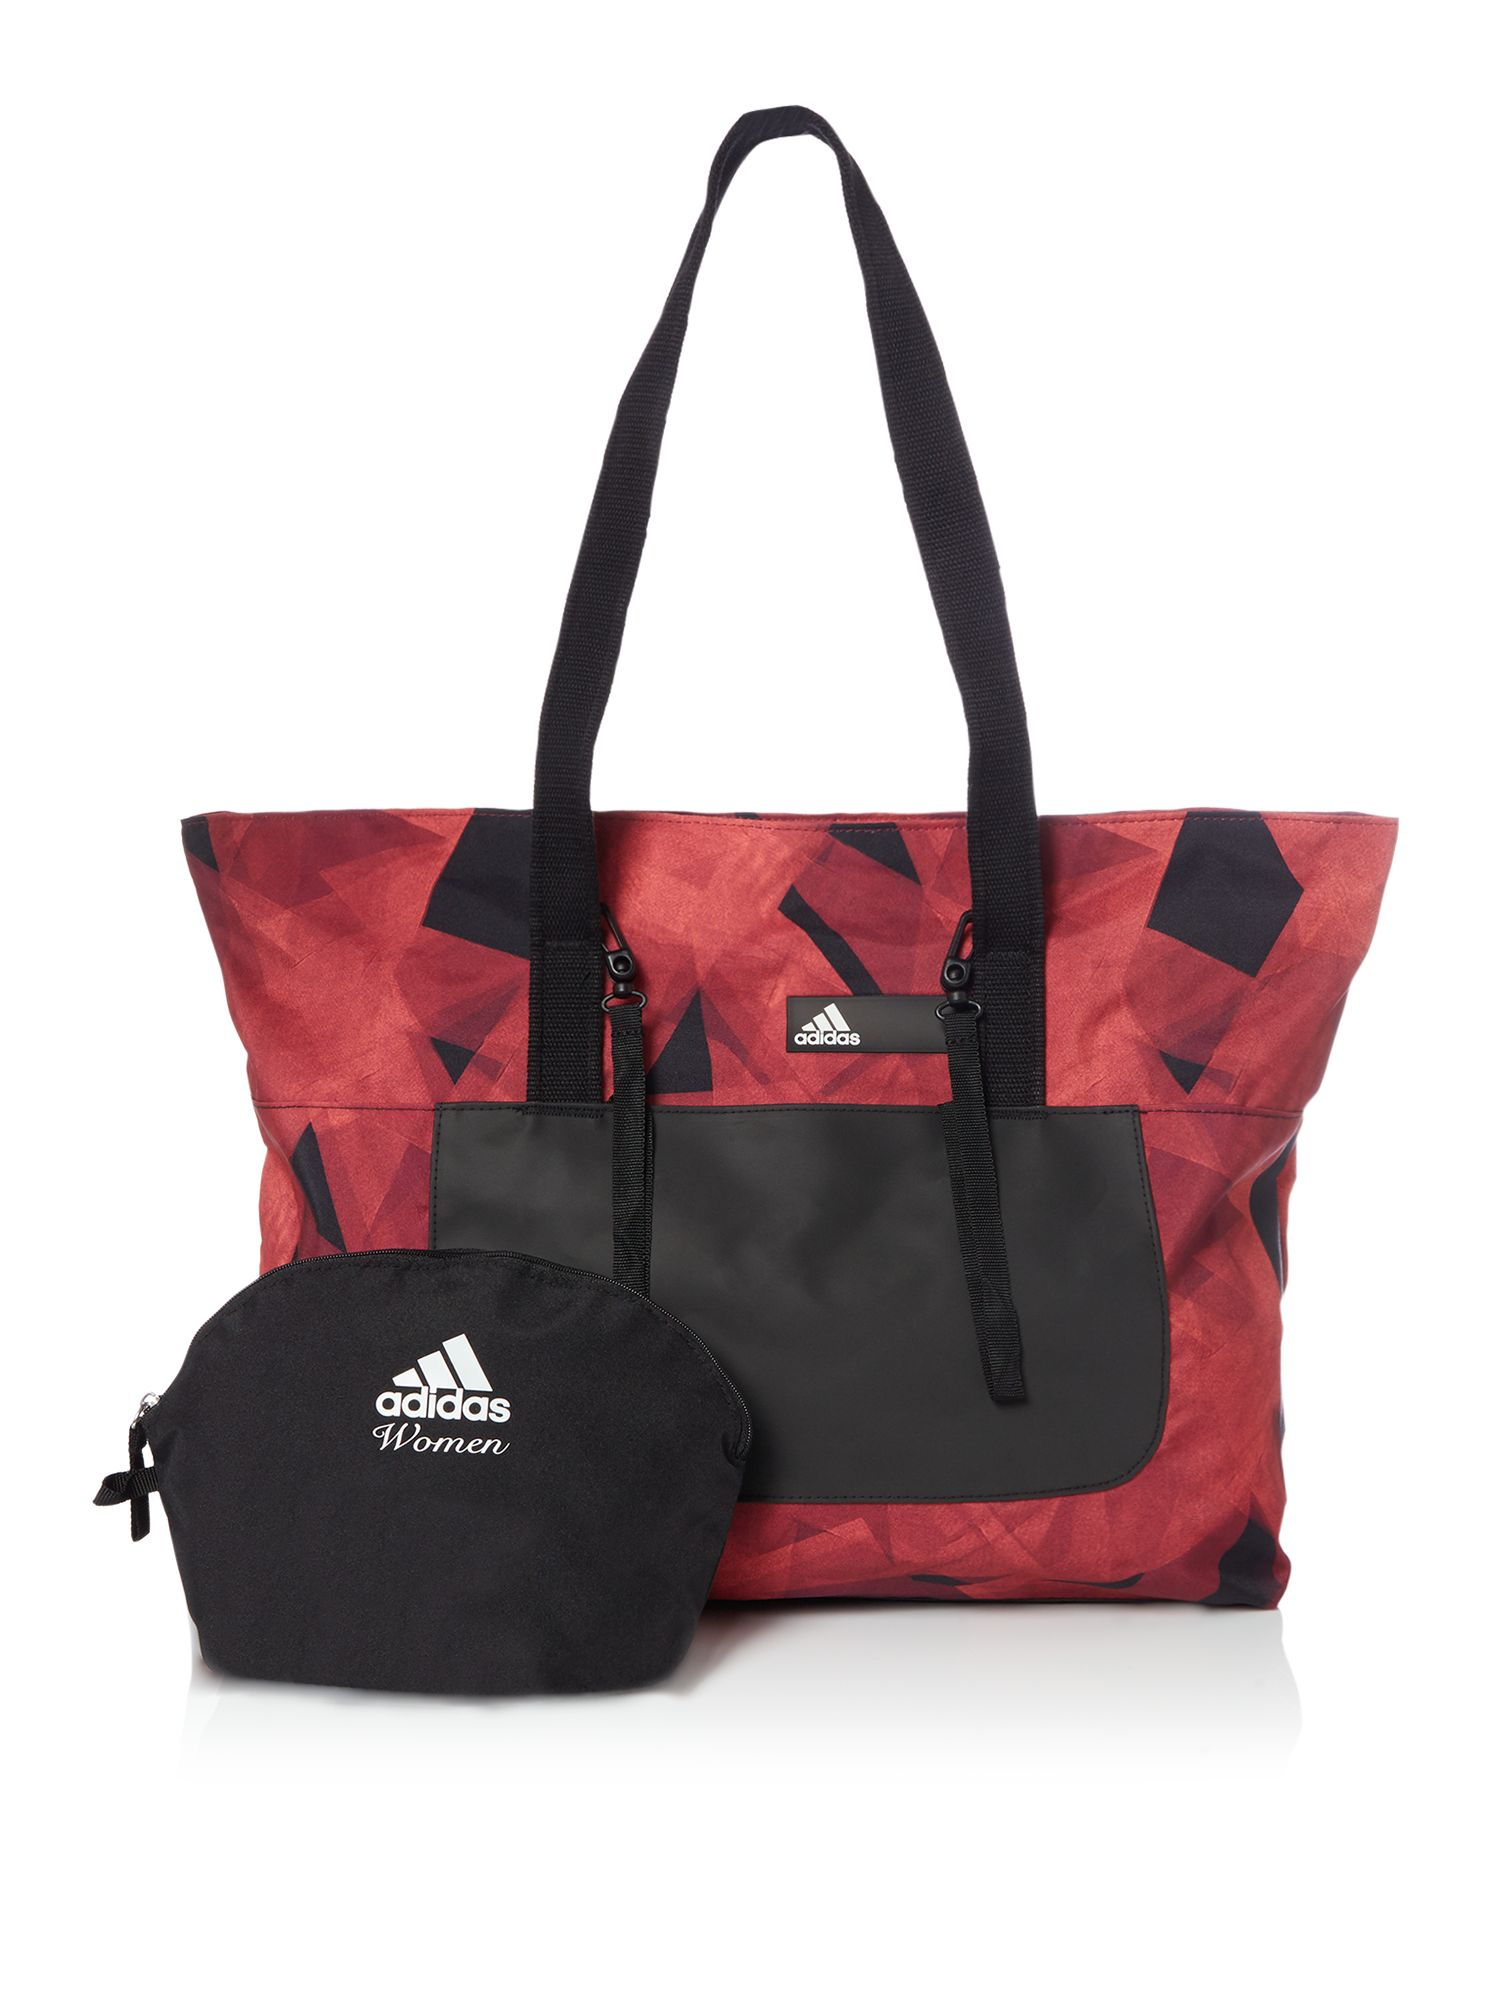 Adidas Patterned tote bag with pouch, Red